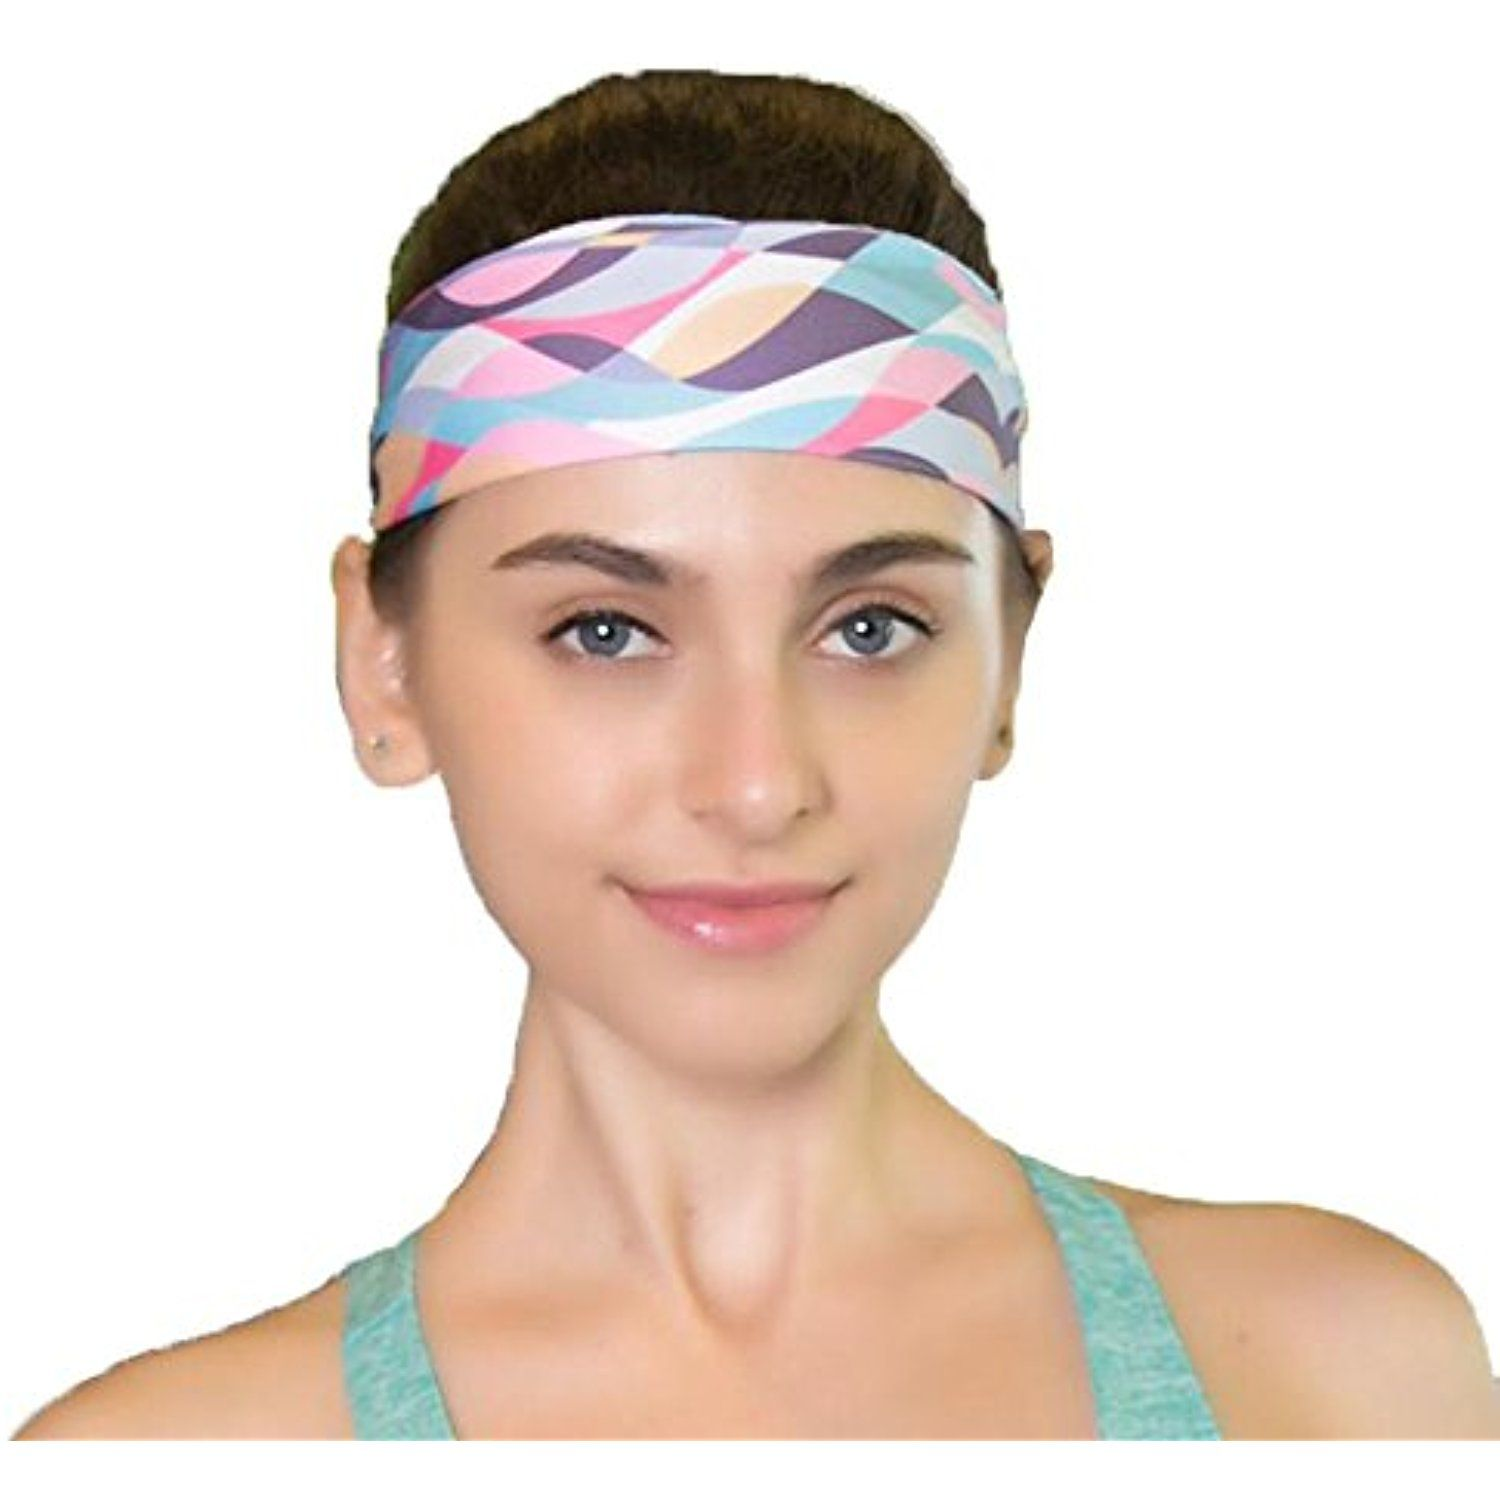 Sweat Wicking Stretchy Athletic Headband Yoga Headbands for Women - Wide  Non Slip Design for Running Workout and Fitness     Read more reviews of  the ... 9dfe45b872